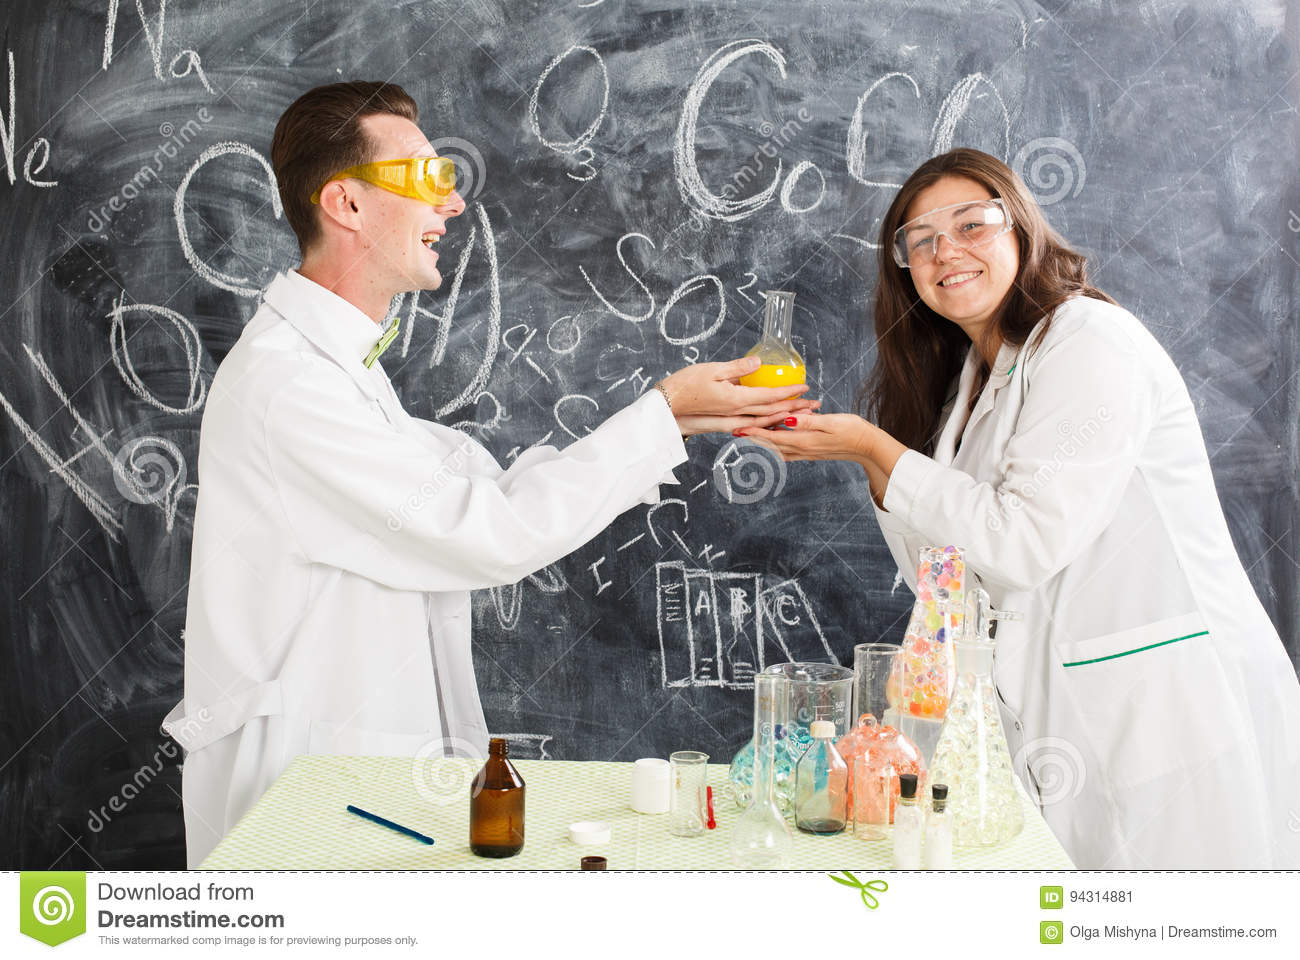 Chemistry man and woman